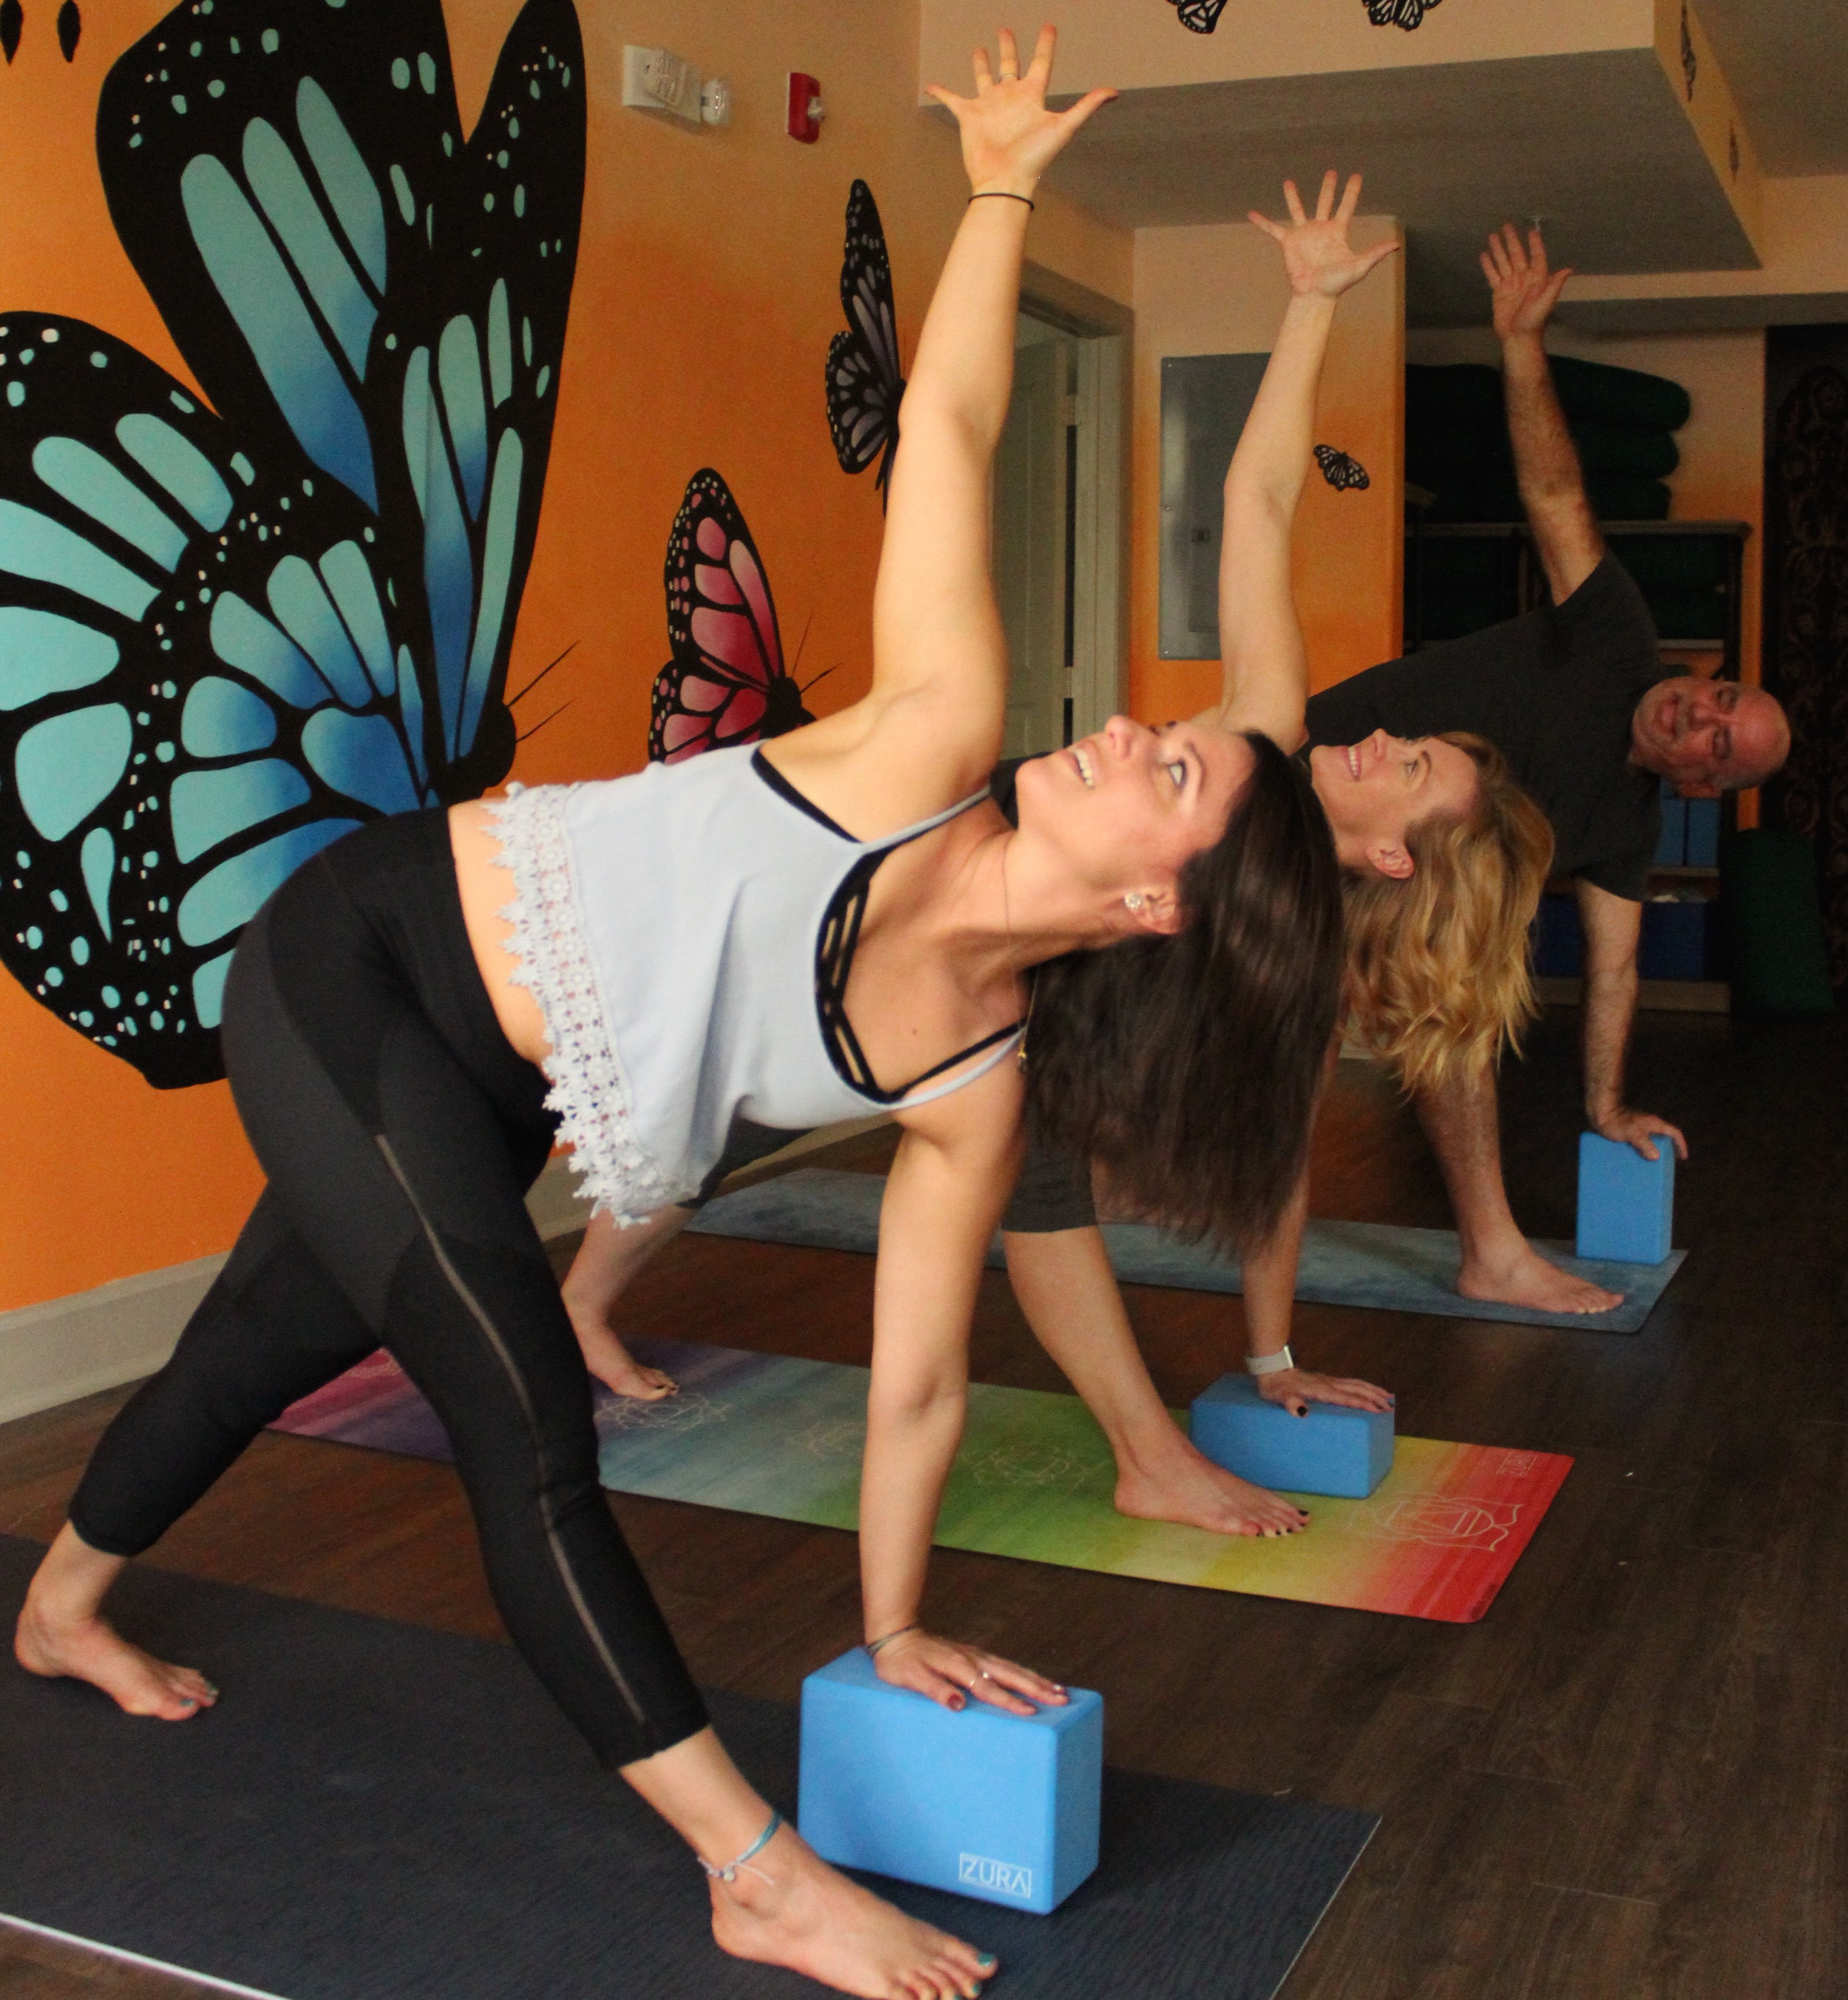 Balancing Workshop - March 16, 20192-3:30pm with Kate SalvatoriEagle, Dancer, Half-Moon...What do all of these asana have in common?Balance!A sense of balance means more than being able to stand on one foot! True balance in yoga means physical, mental, and emotional stability. Finding your center and being able to remain steady while balancing will improve your focus, relieve stress, and help you to deal with difficult situations. You'll learn to approach challenges with calm awareness, both on and off the mat.Join us for a workshop centered around these balance poses and more!